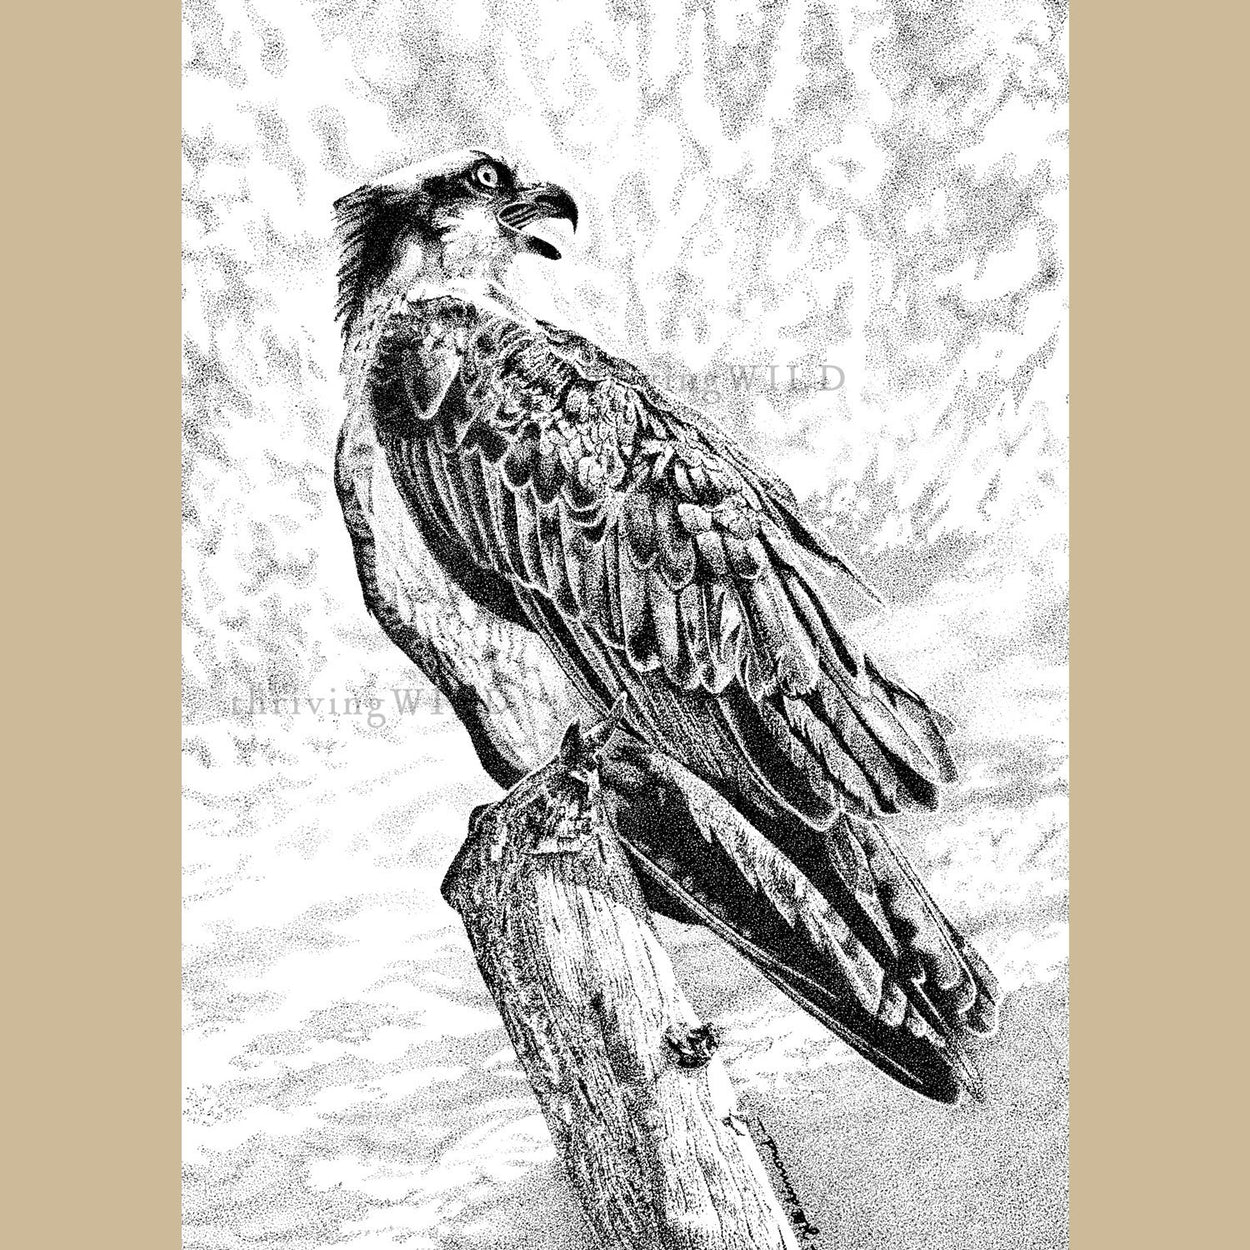 Osprey Pen Stippling Drawing - The Thriving WIld